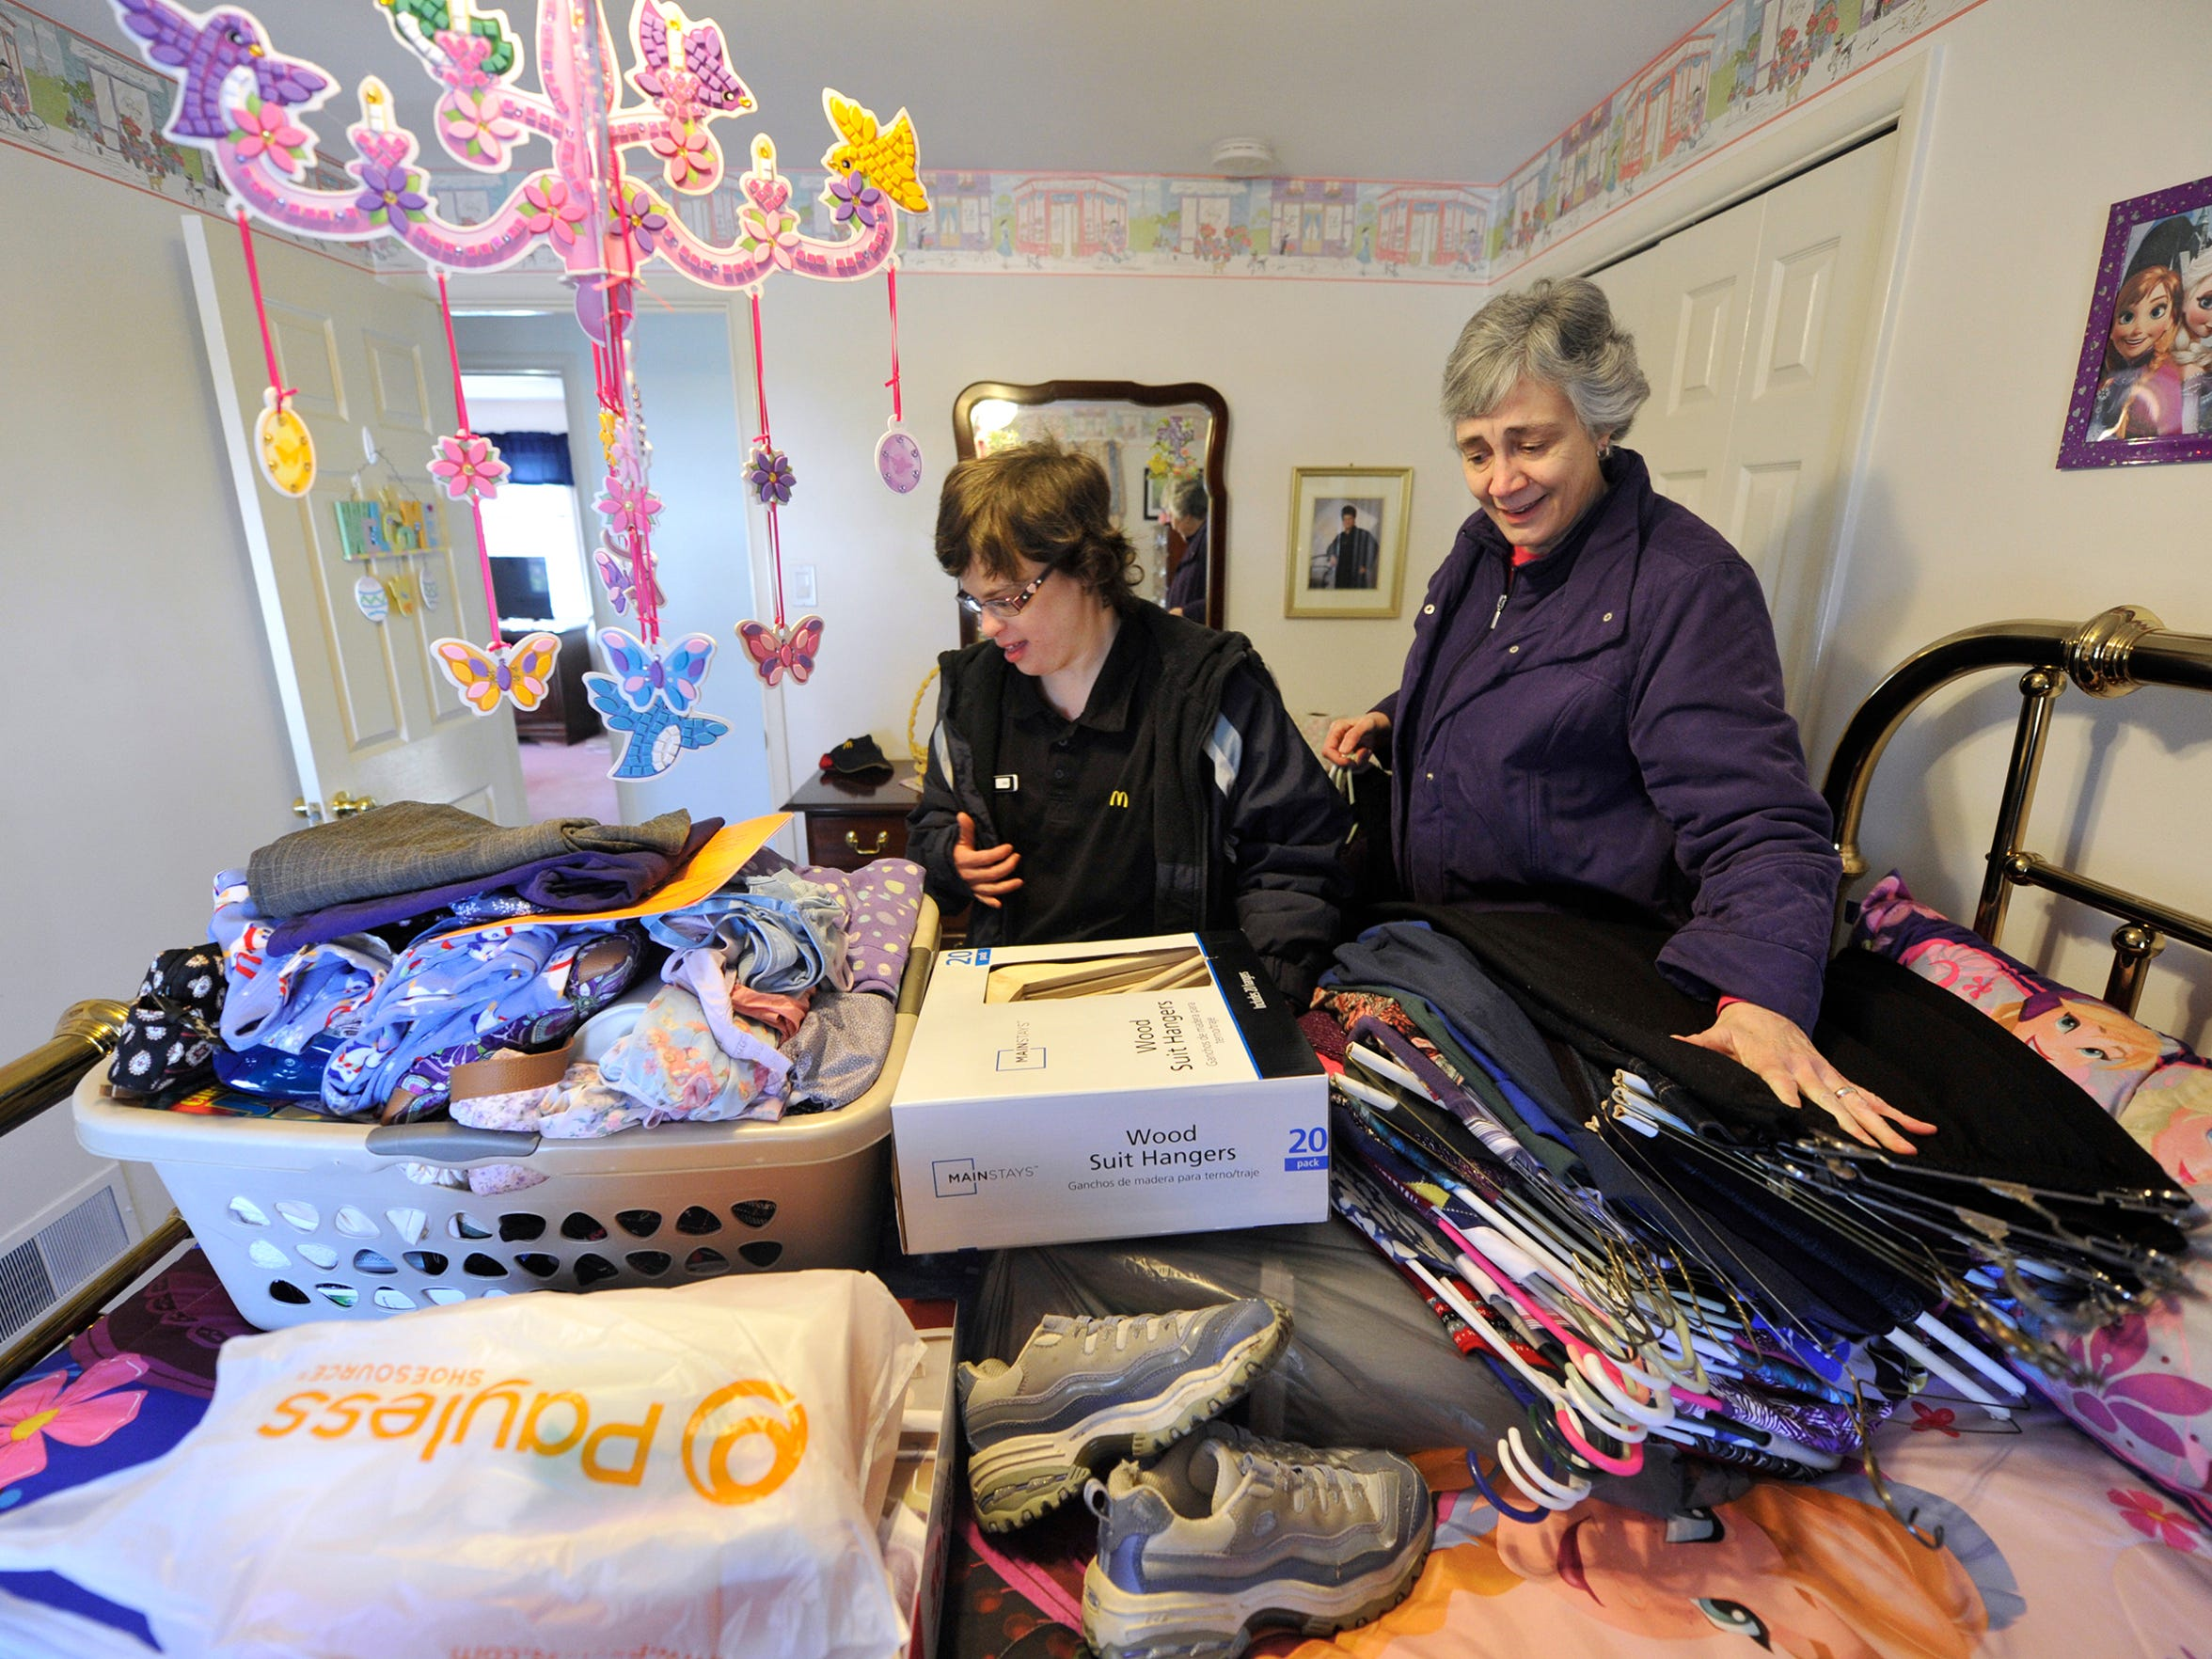 Suzanne Keim, right, helps her daughter, Sarah Keeney, unpack clothes in Keeney's bedroom of her new group home, which was opened by Jessica & Friends Community. State money helped Sarah get a spot at the home, but there isn't nearly enough money to cover everyone with special needs.